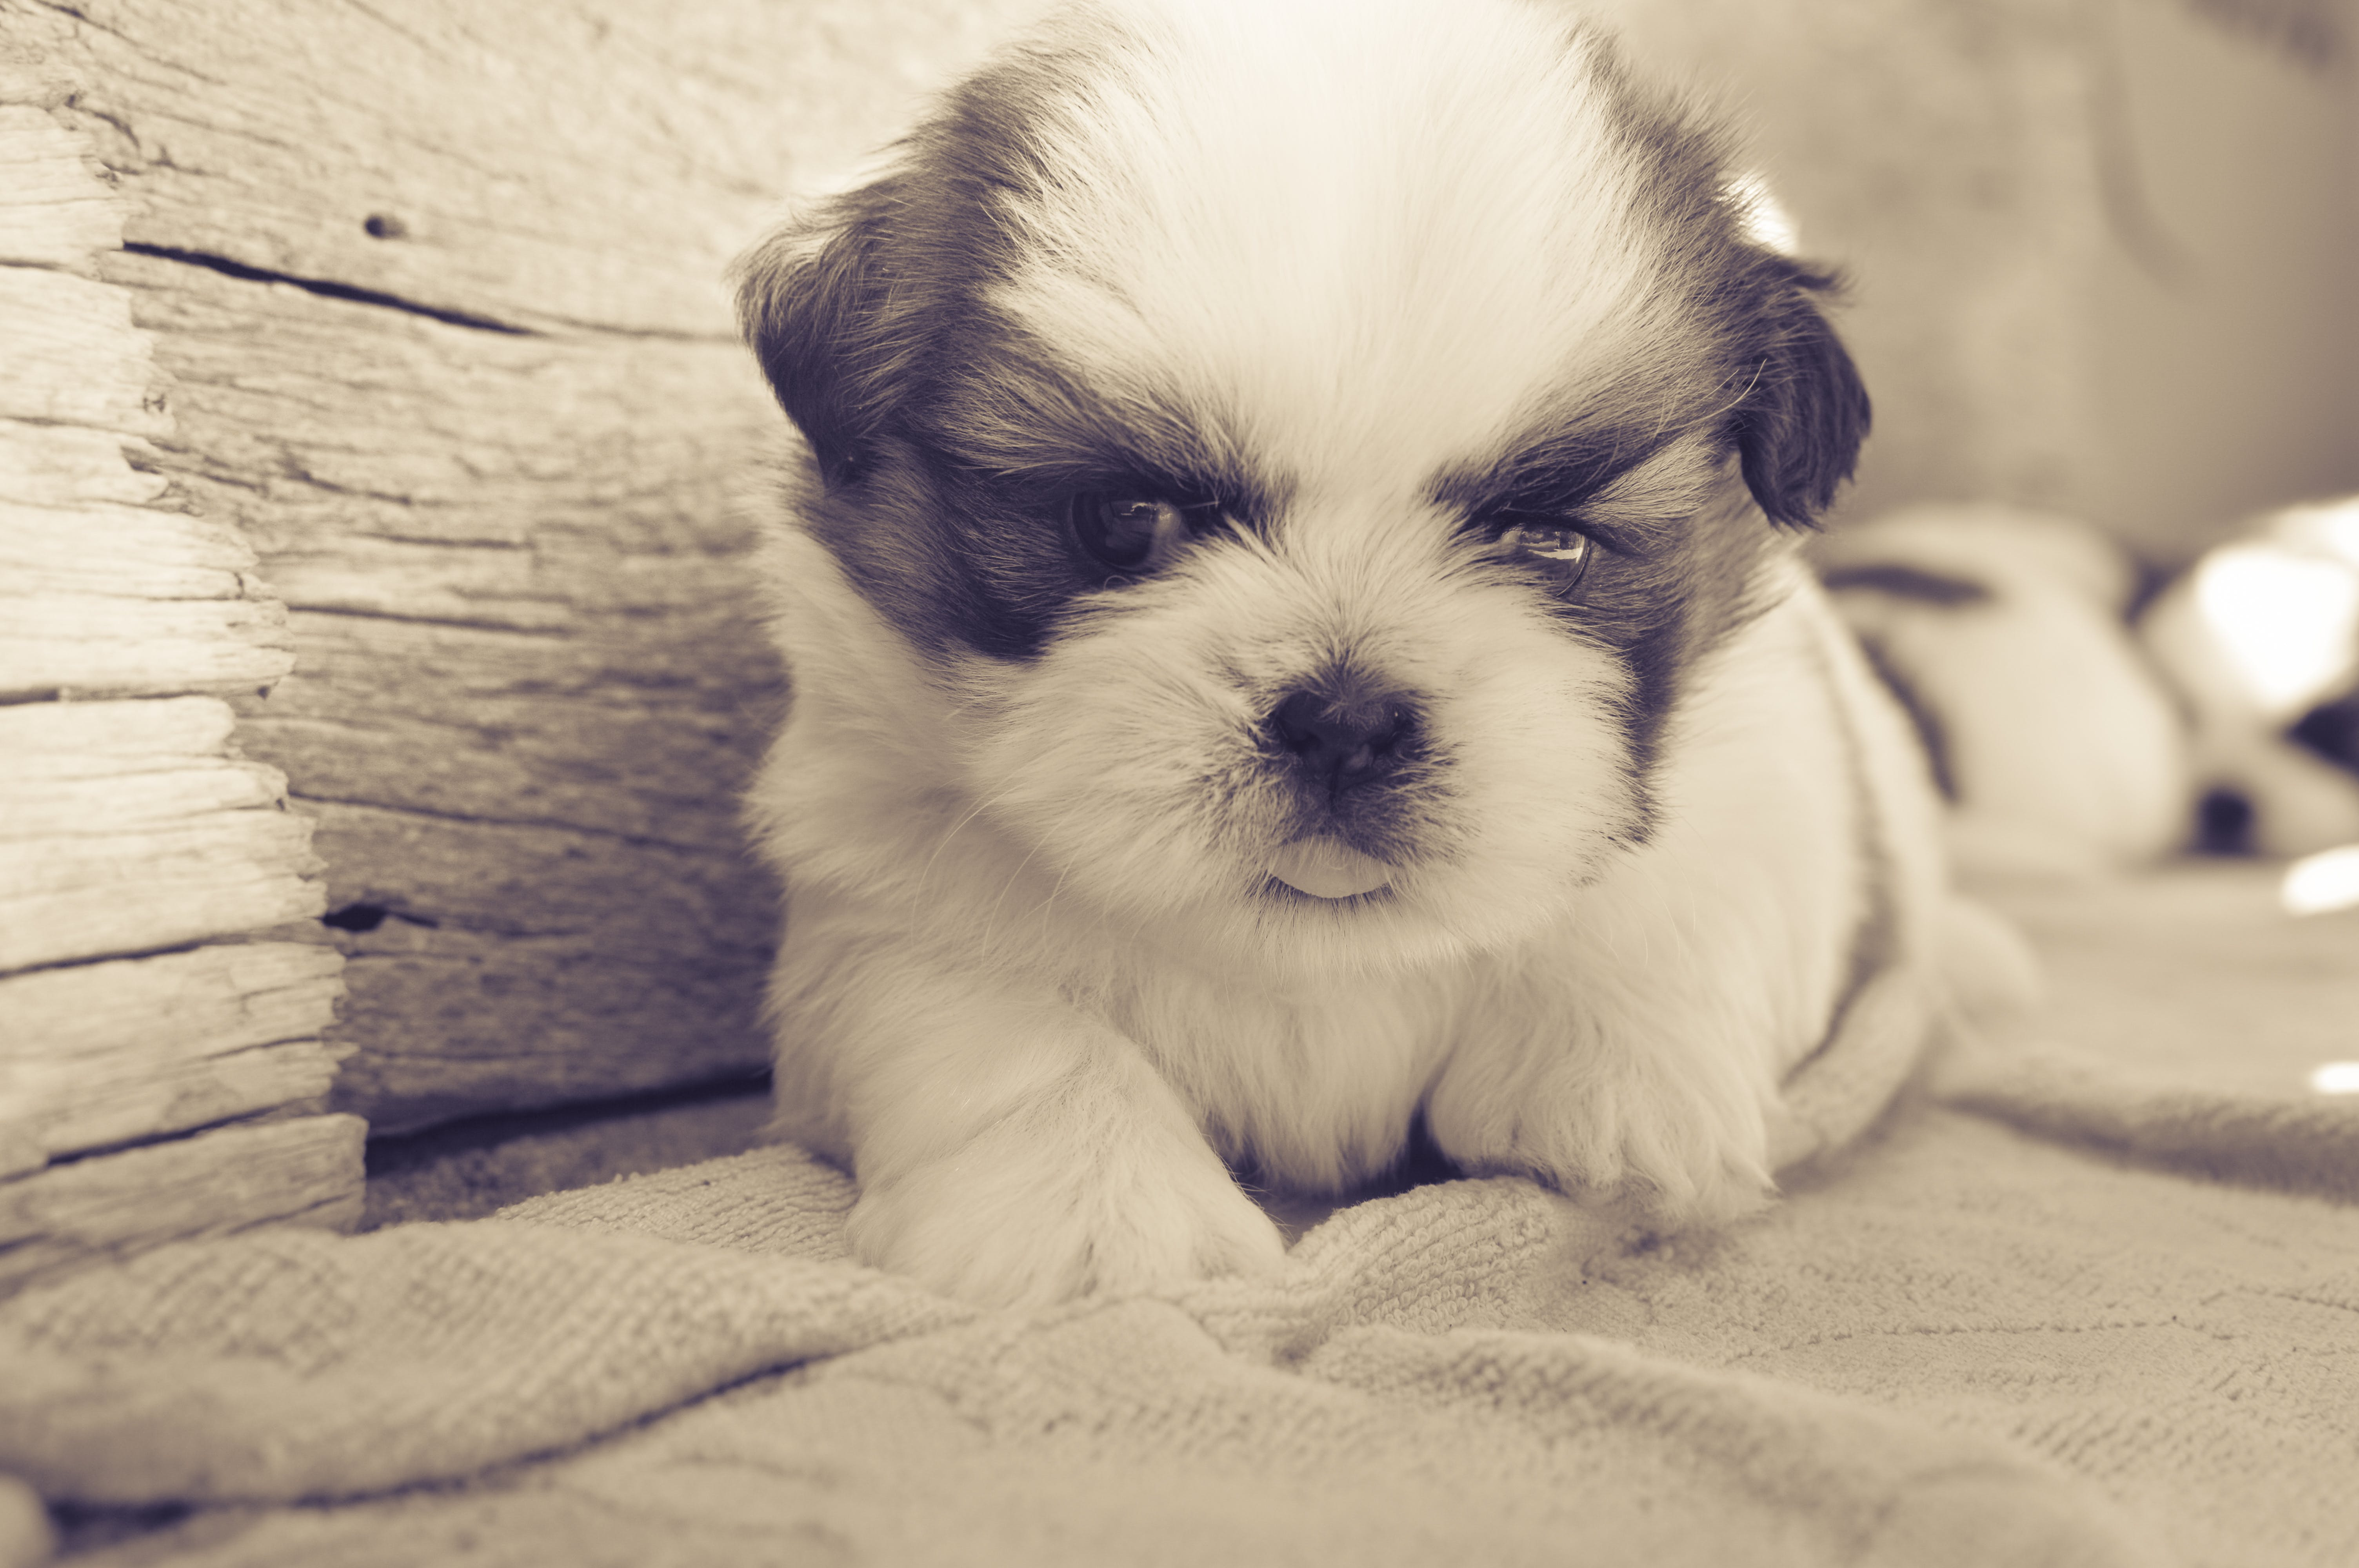 White and Black Fur Puppy on Gray Blanket